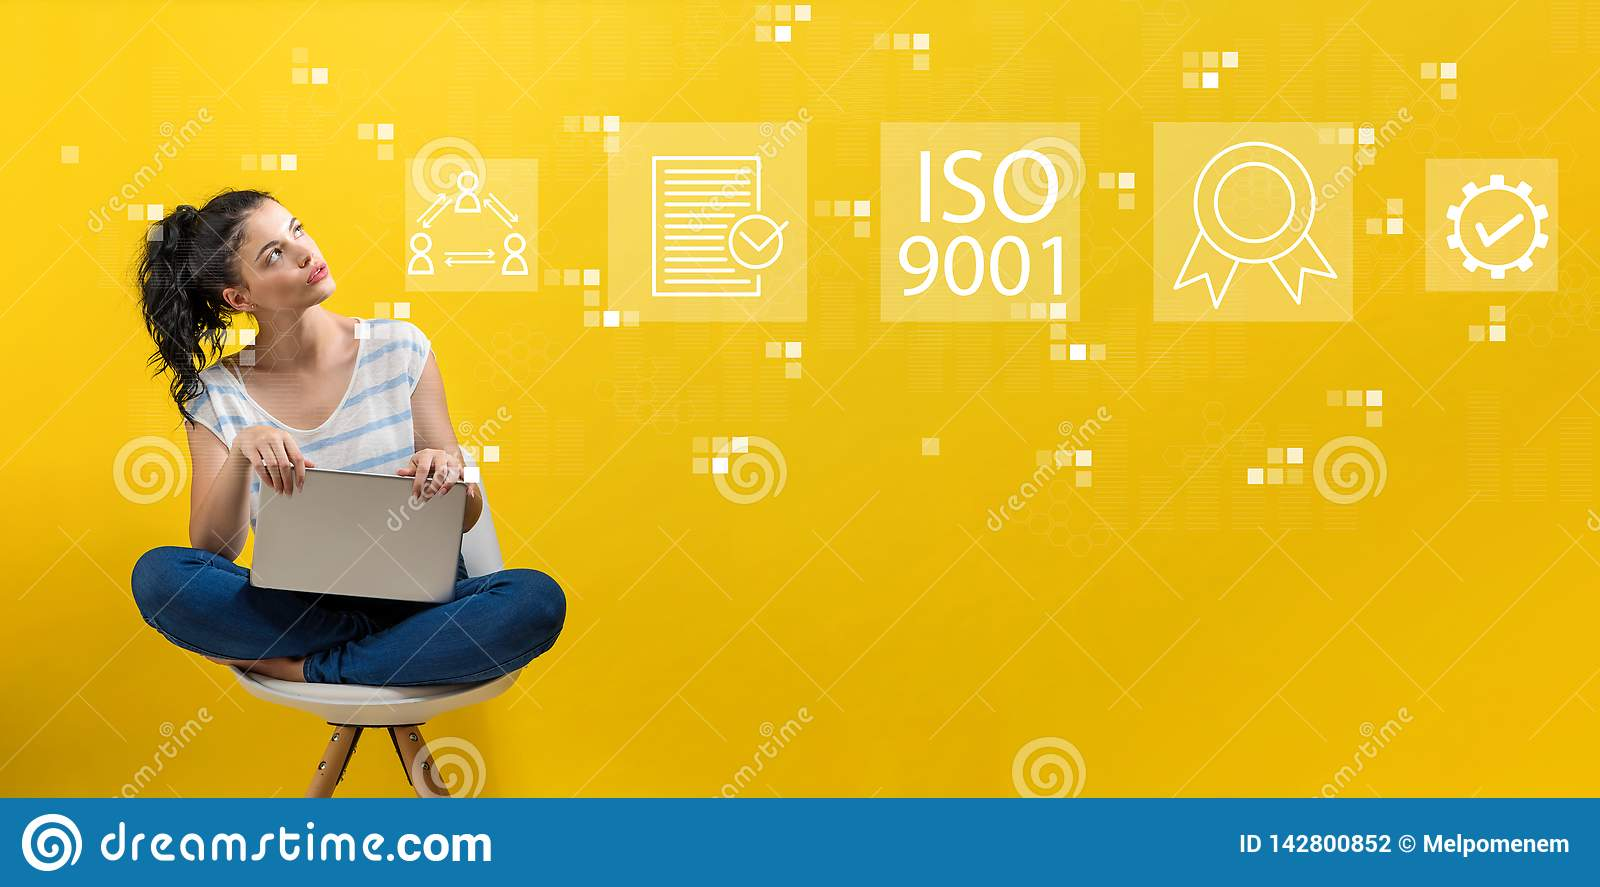 ISO 9001 with woman using a laptop